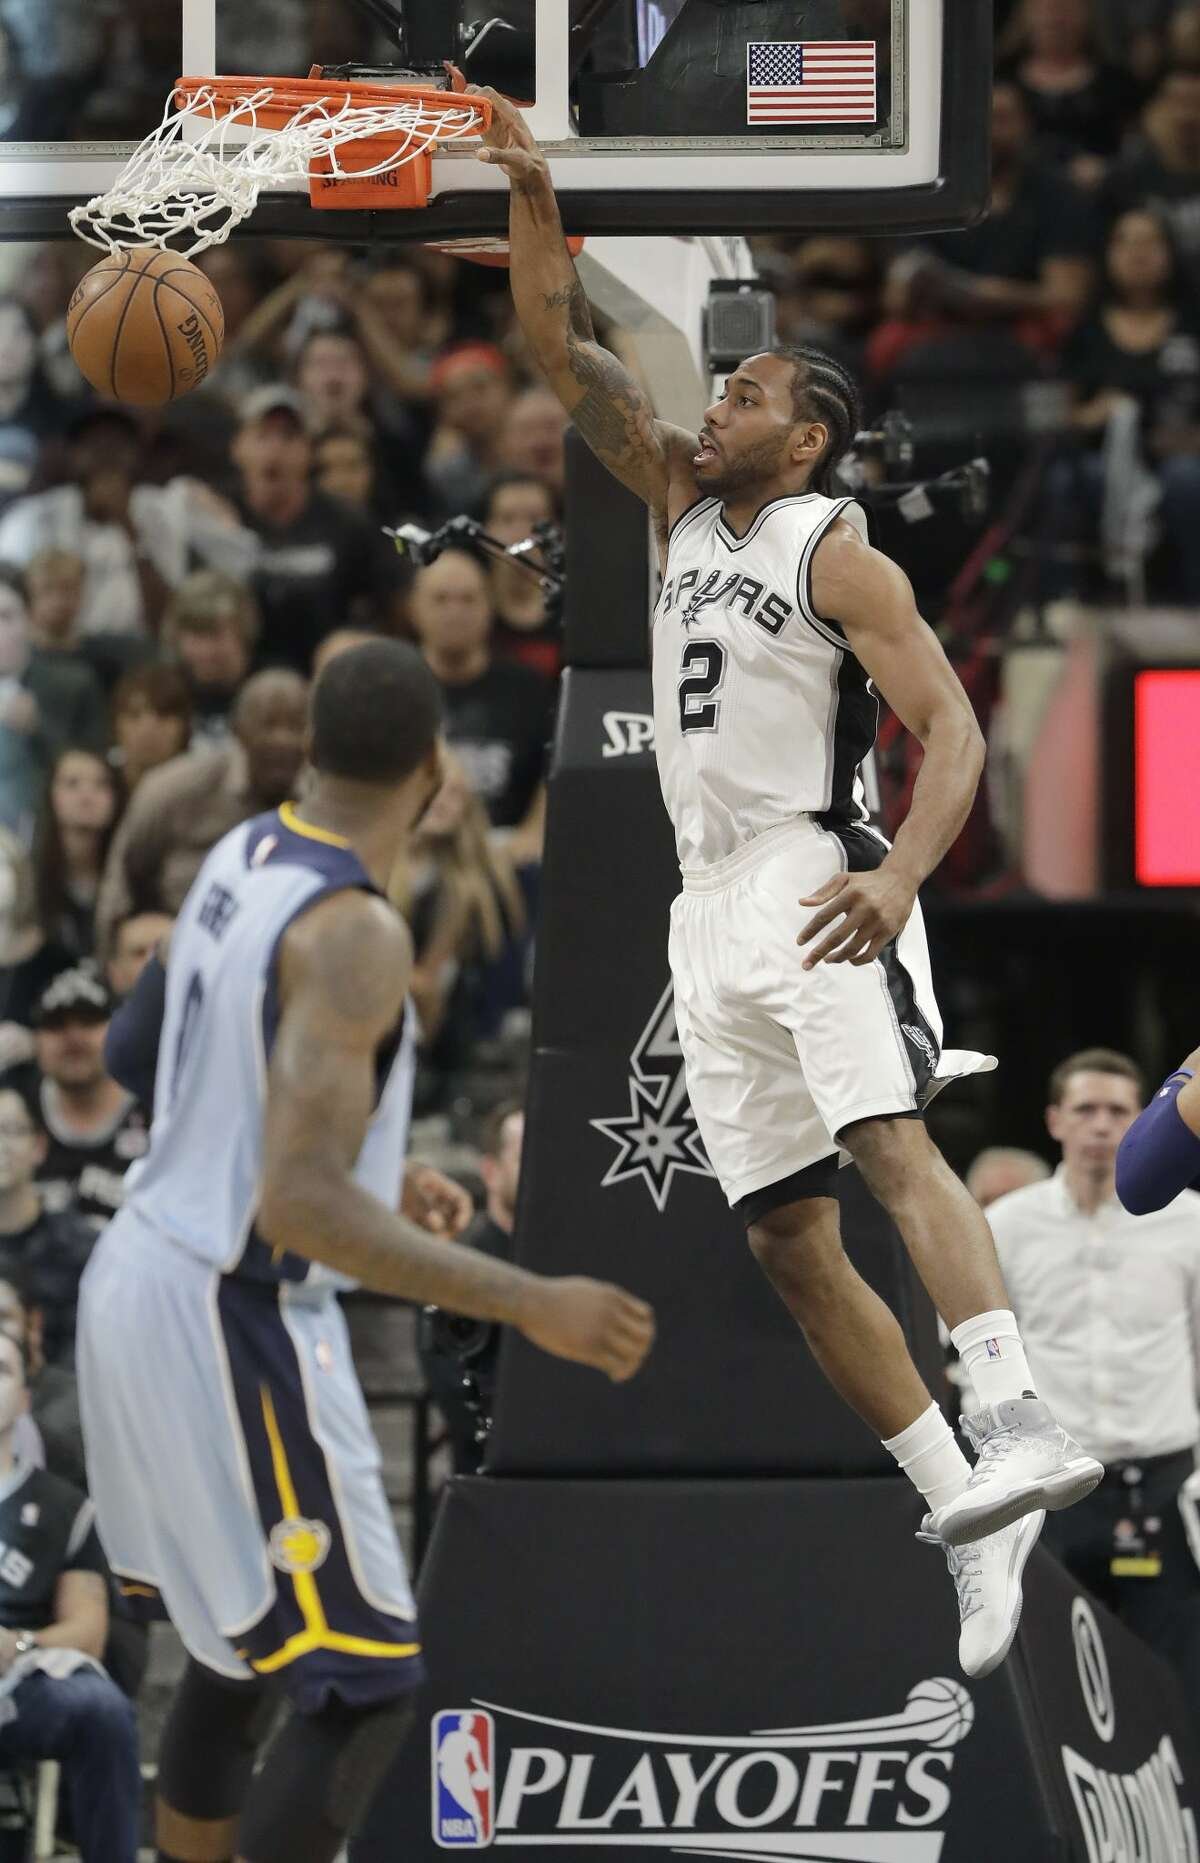 San Antonio Spurs forward Kawhi Leonard (2) scores against the Memphis Grizzlies during the first half in Game 2 of a first-round NBA basketball playoff series, Monday, April 17, 2017, in San Antonio. (AP Photo/Eric Gay)